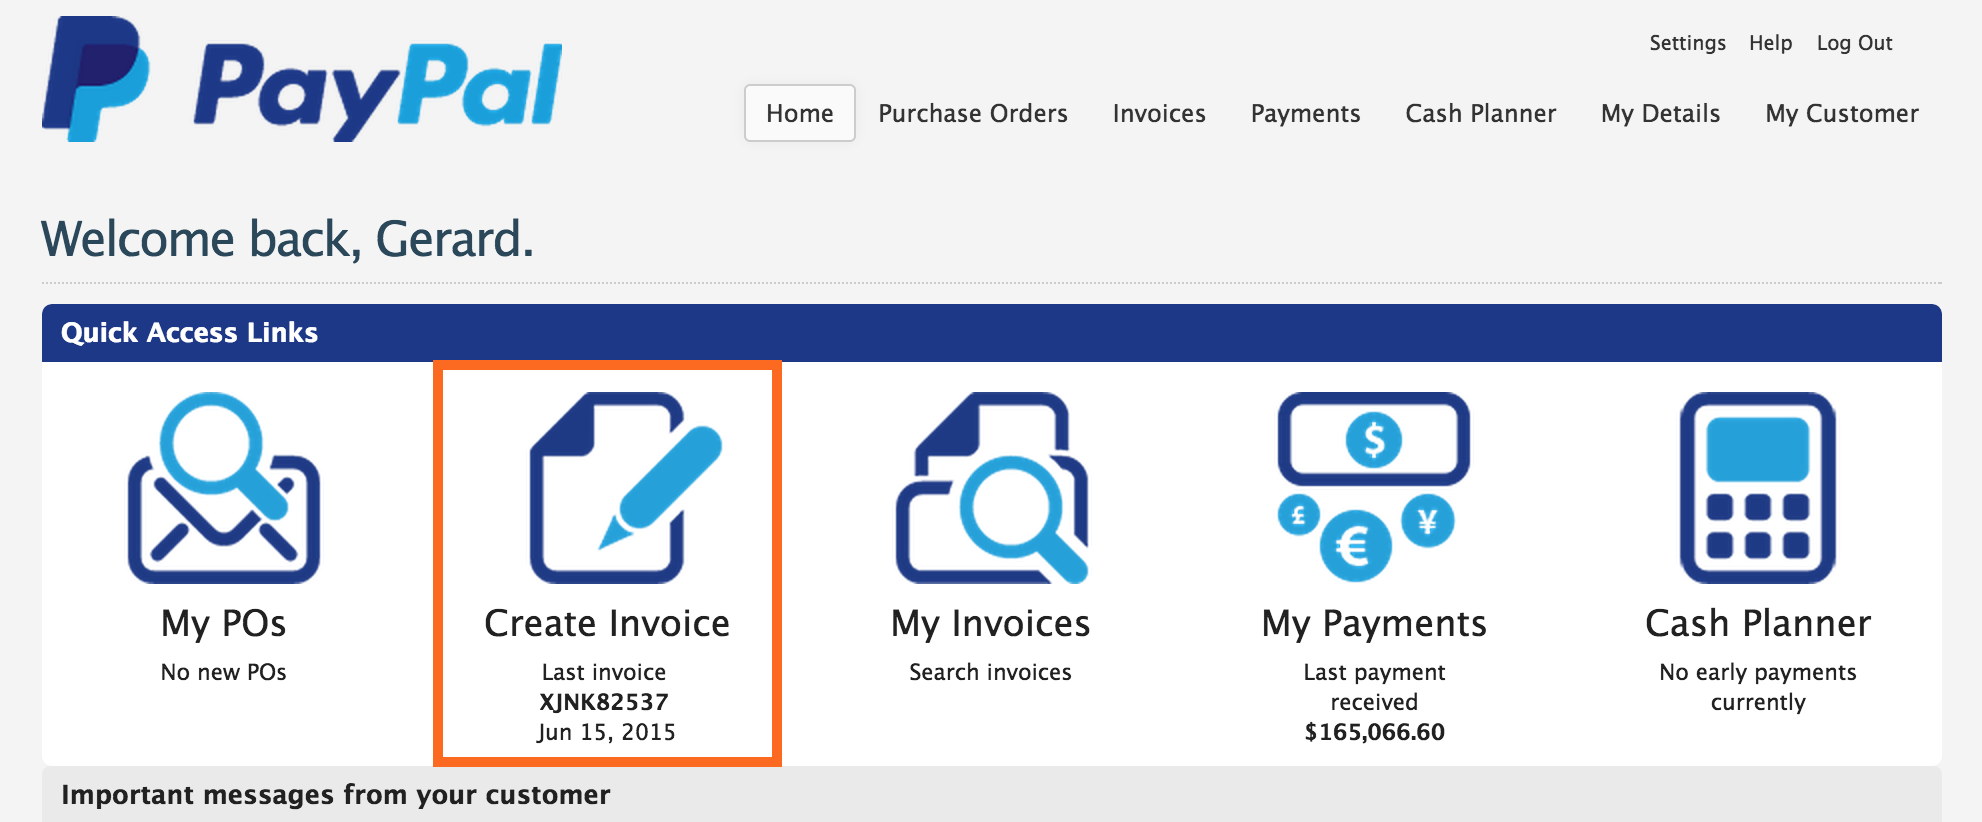 Taulia Support PayPal How Do I Create A PO Based Invoice EFlip - How to create an invoice paypal